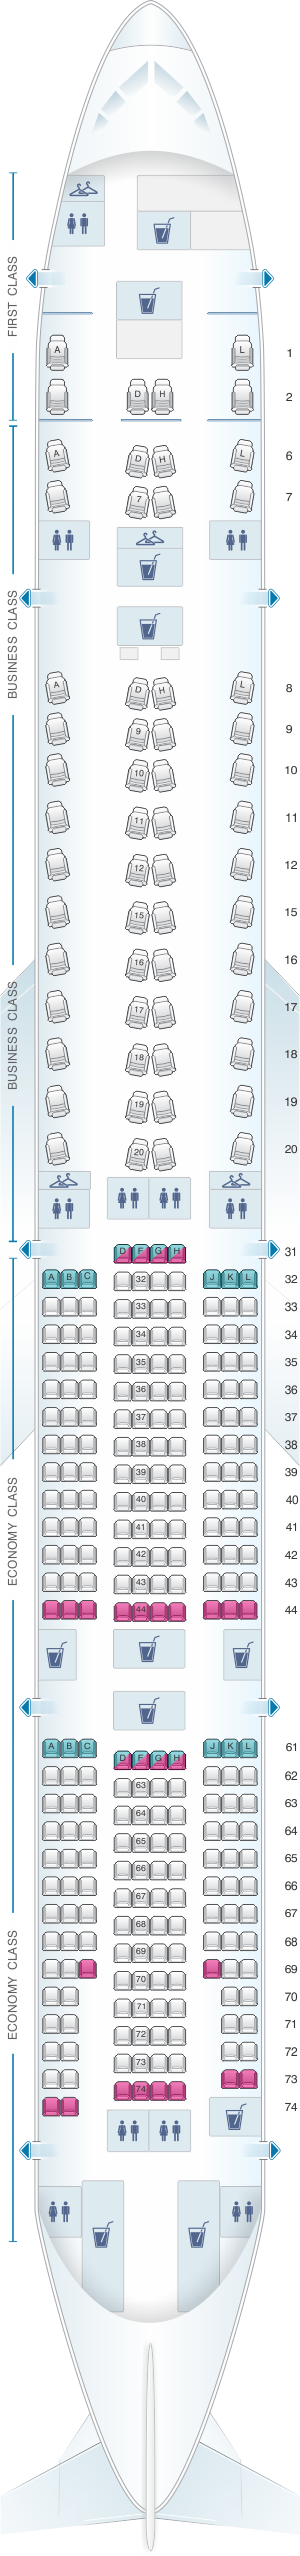 Seat map for China Eastern Airlines Boeing B777 300ER